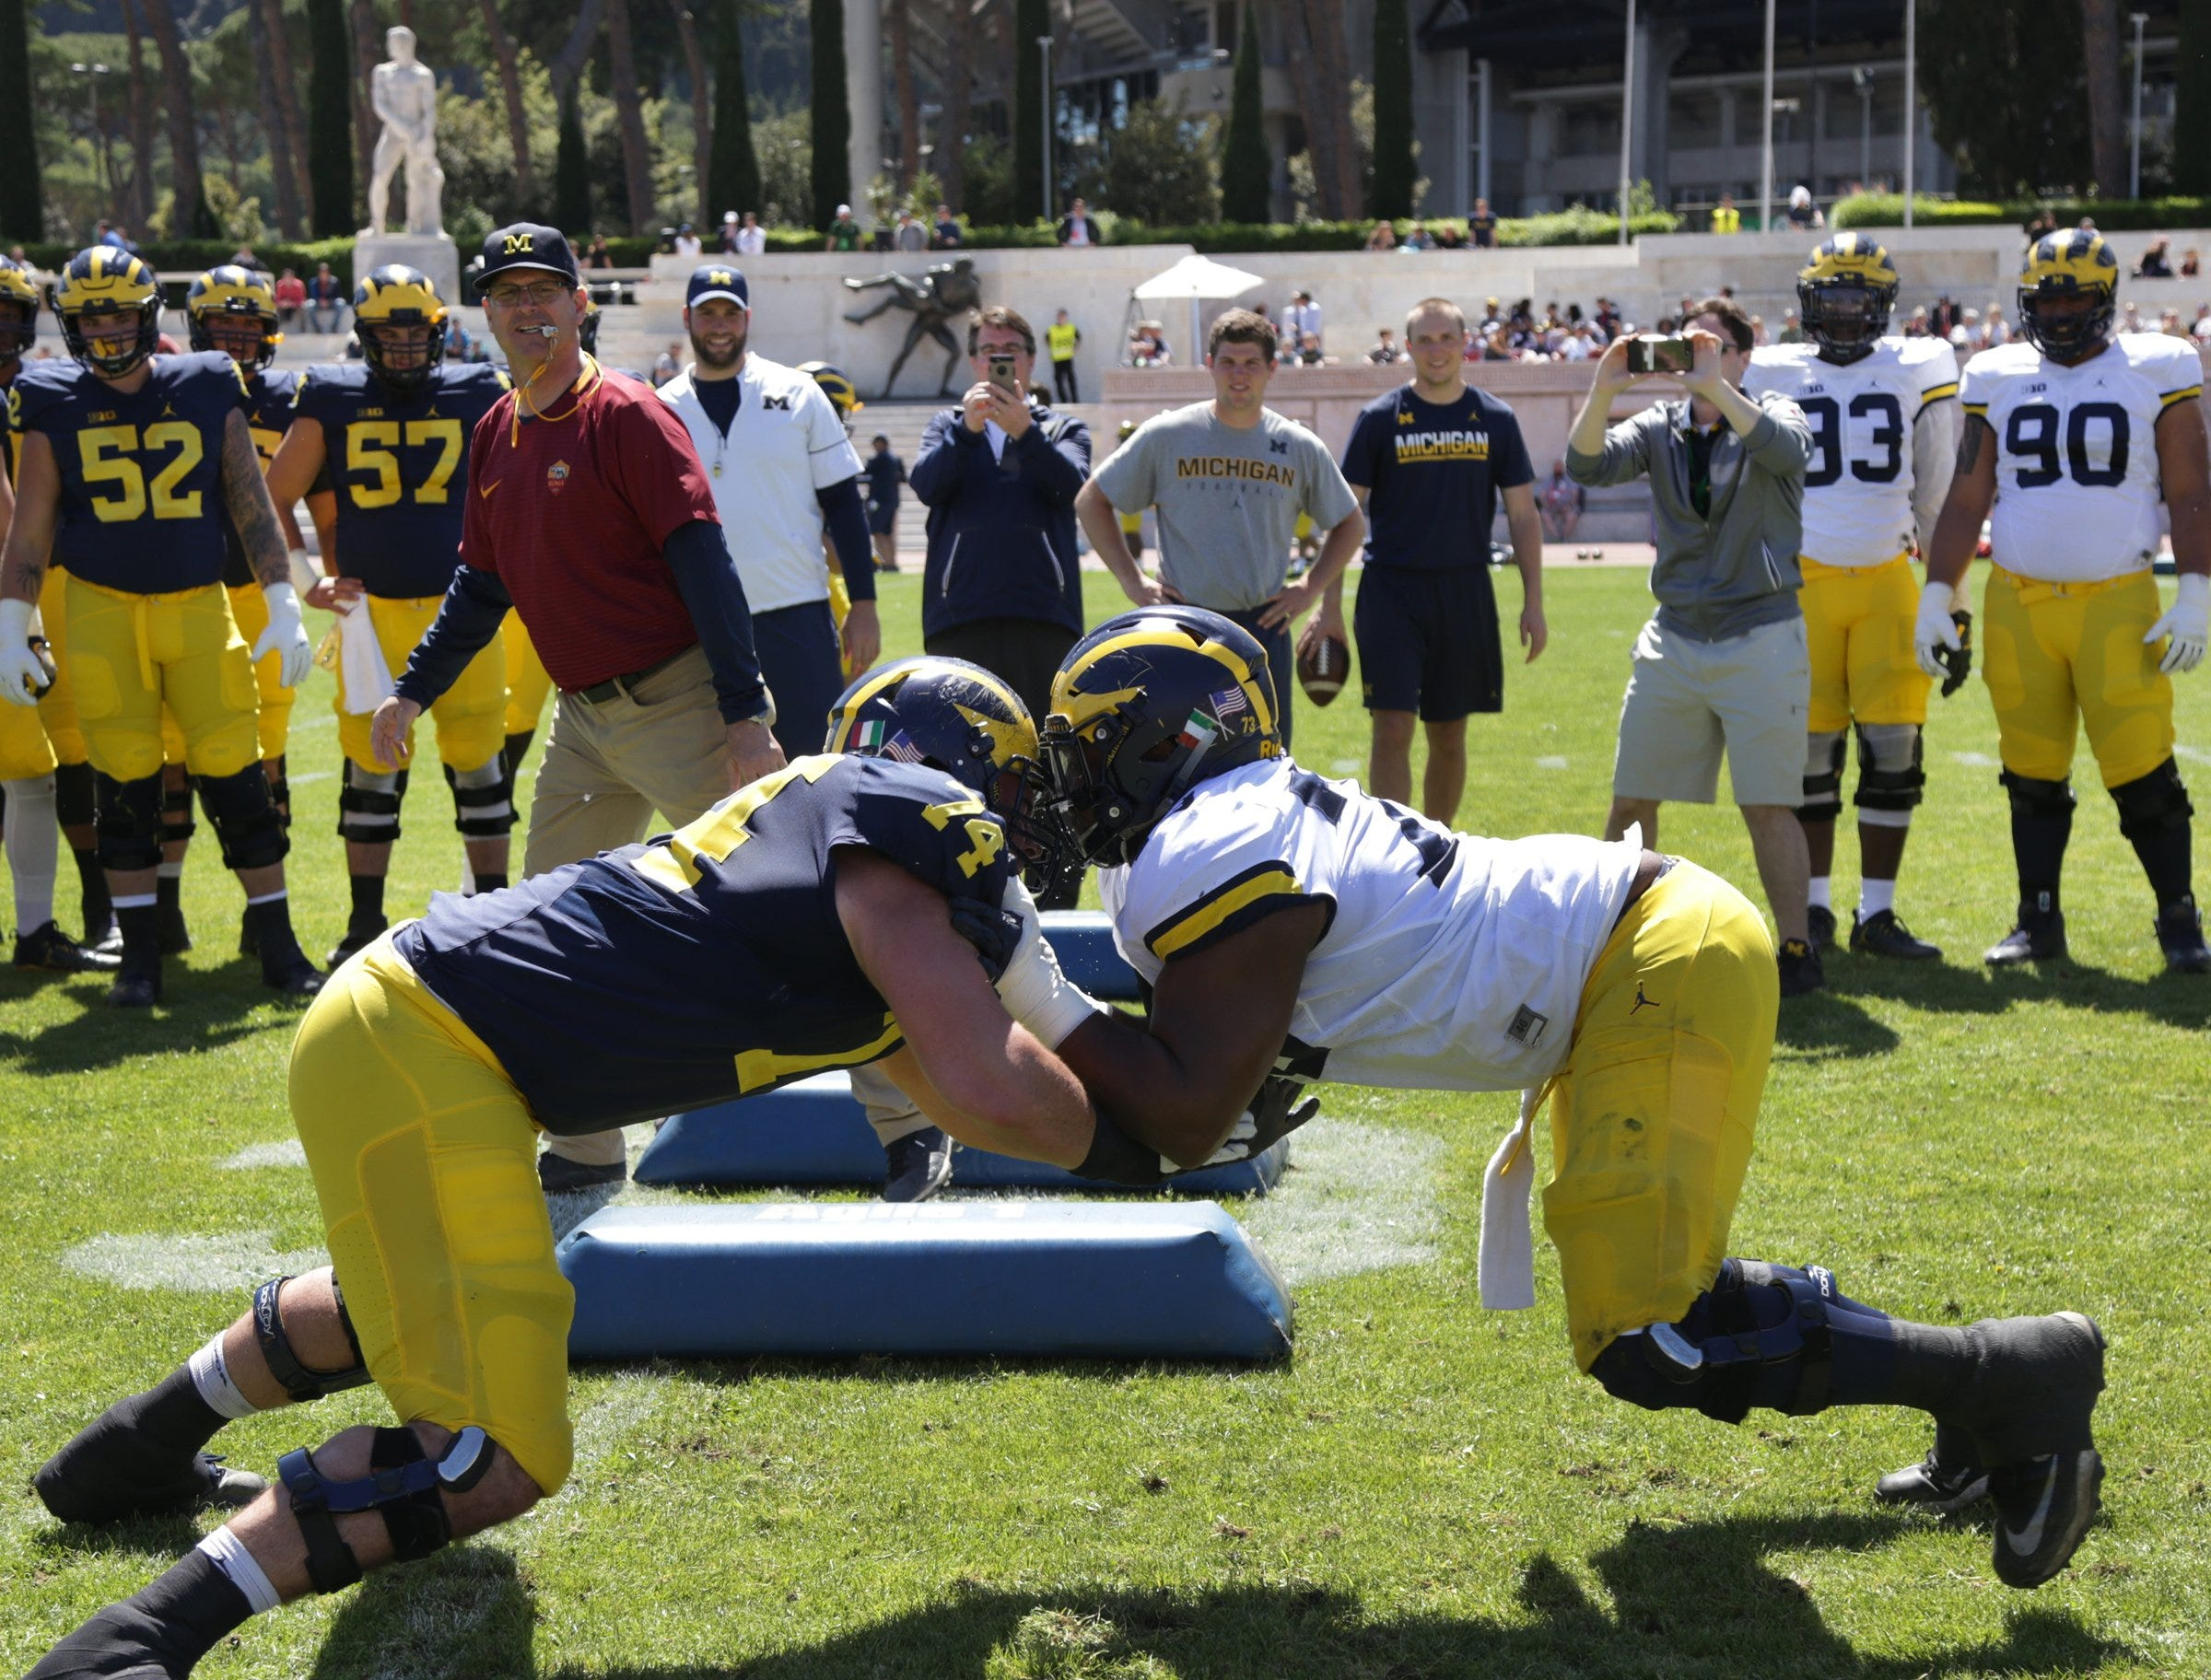 Michigan vs. Florida opener will kick off at 3:30 p.m. on Sept. 2 in Texas